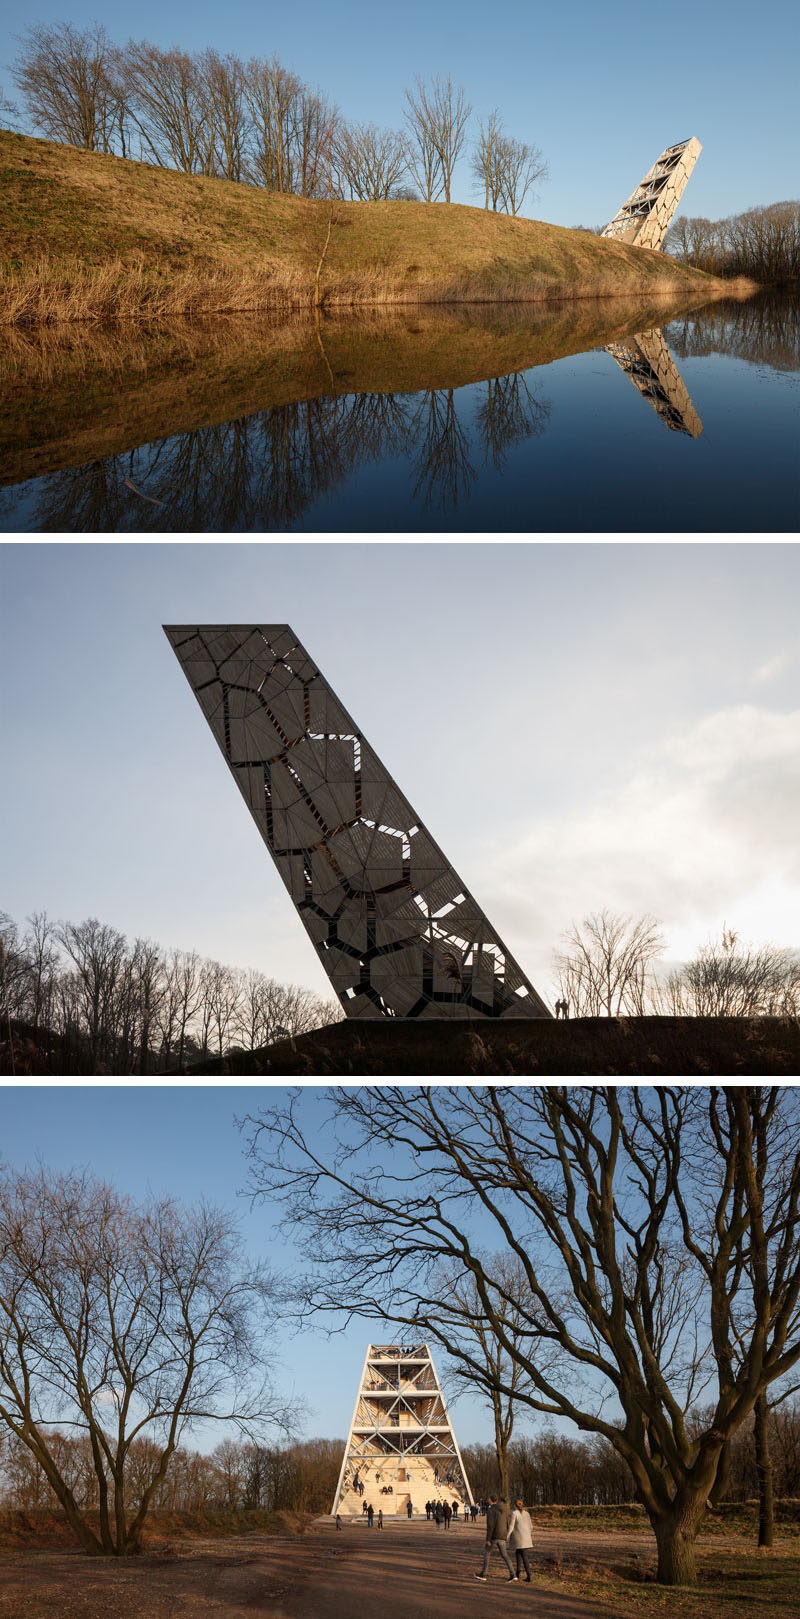 RO&AD Architecten have recently completed Pompejus, a watchtower, an open-air theatre and an information point for tourists, that's located on Fort de Roovere in Halsteren, The Netherlands. #Watchtower #Lookout #Architecture #Design